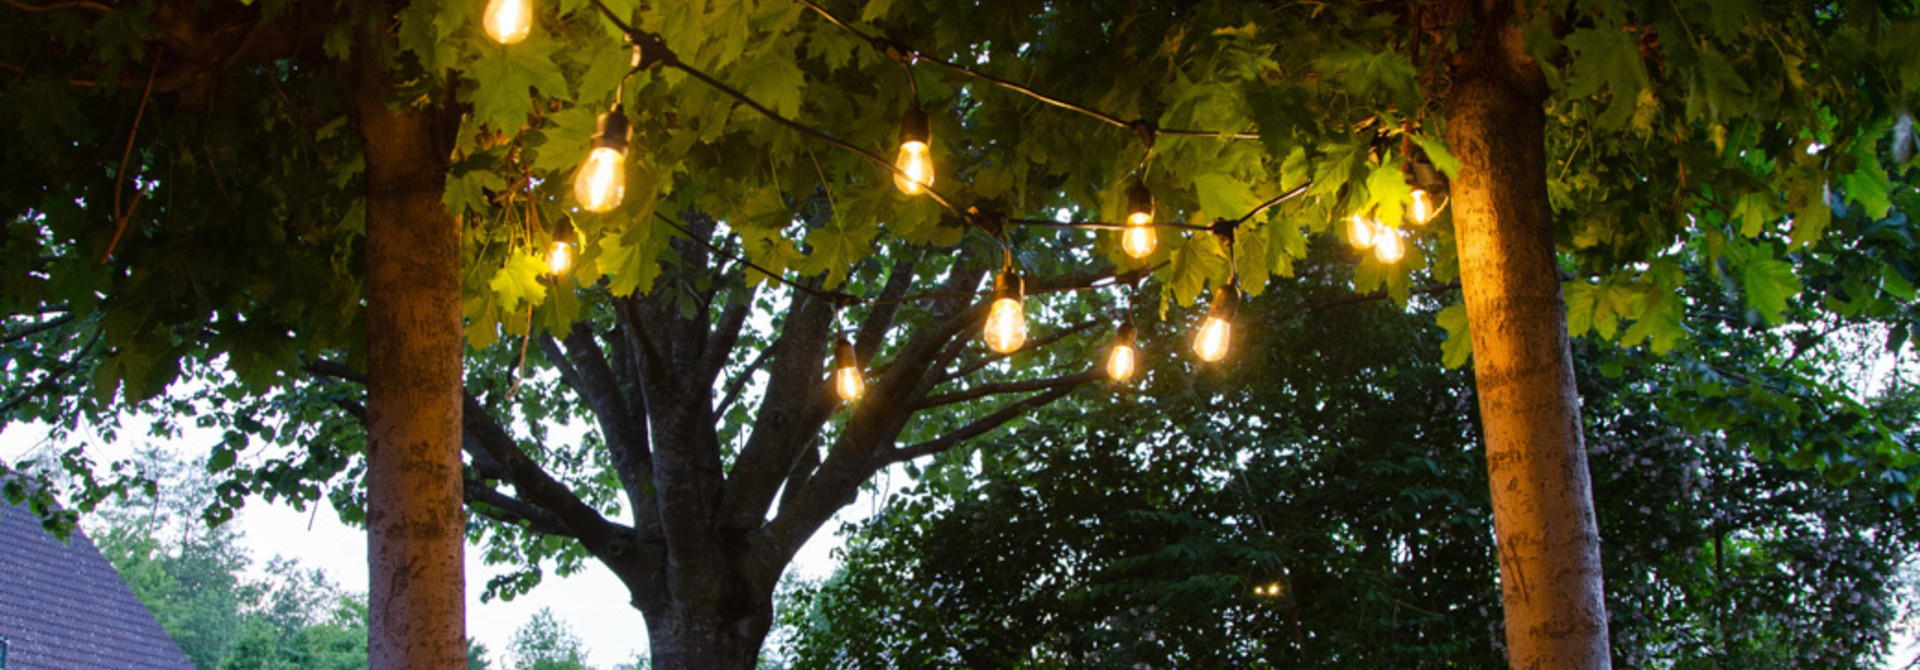 Summer night proof with our outdoor lighting